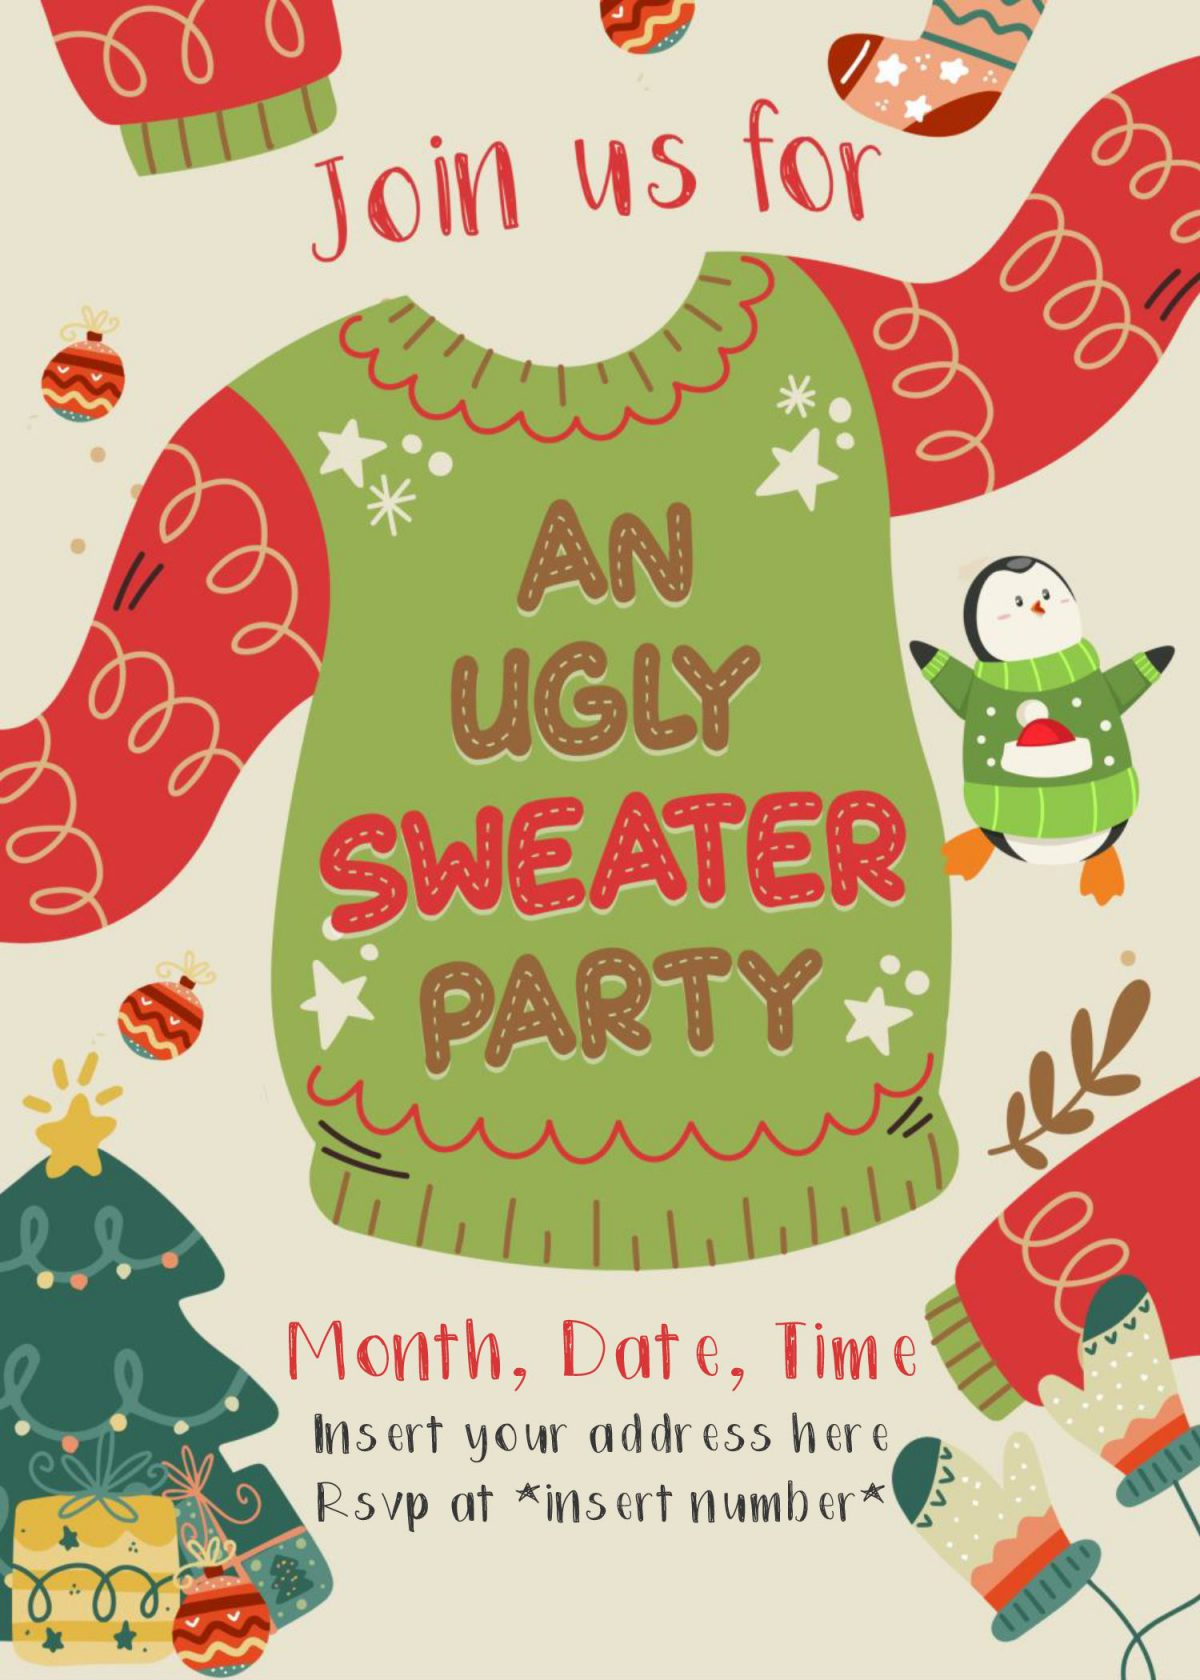 Free Winter Ugly Sweater Birthday Party Invitation Templates For Word and has Christmas tree and balls